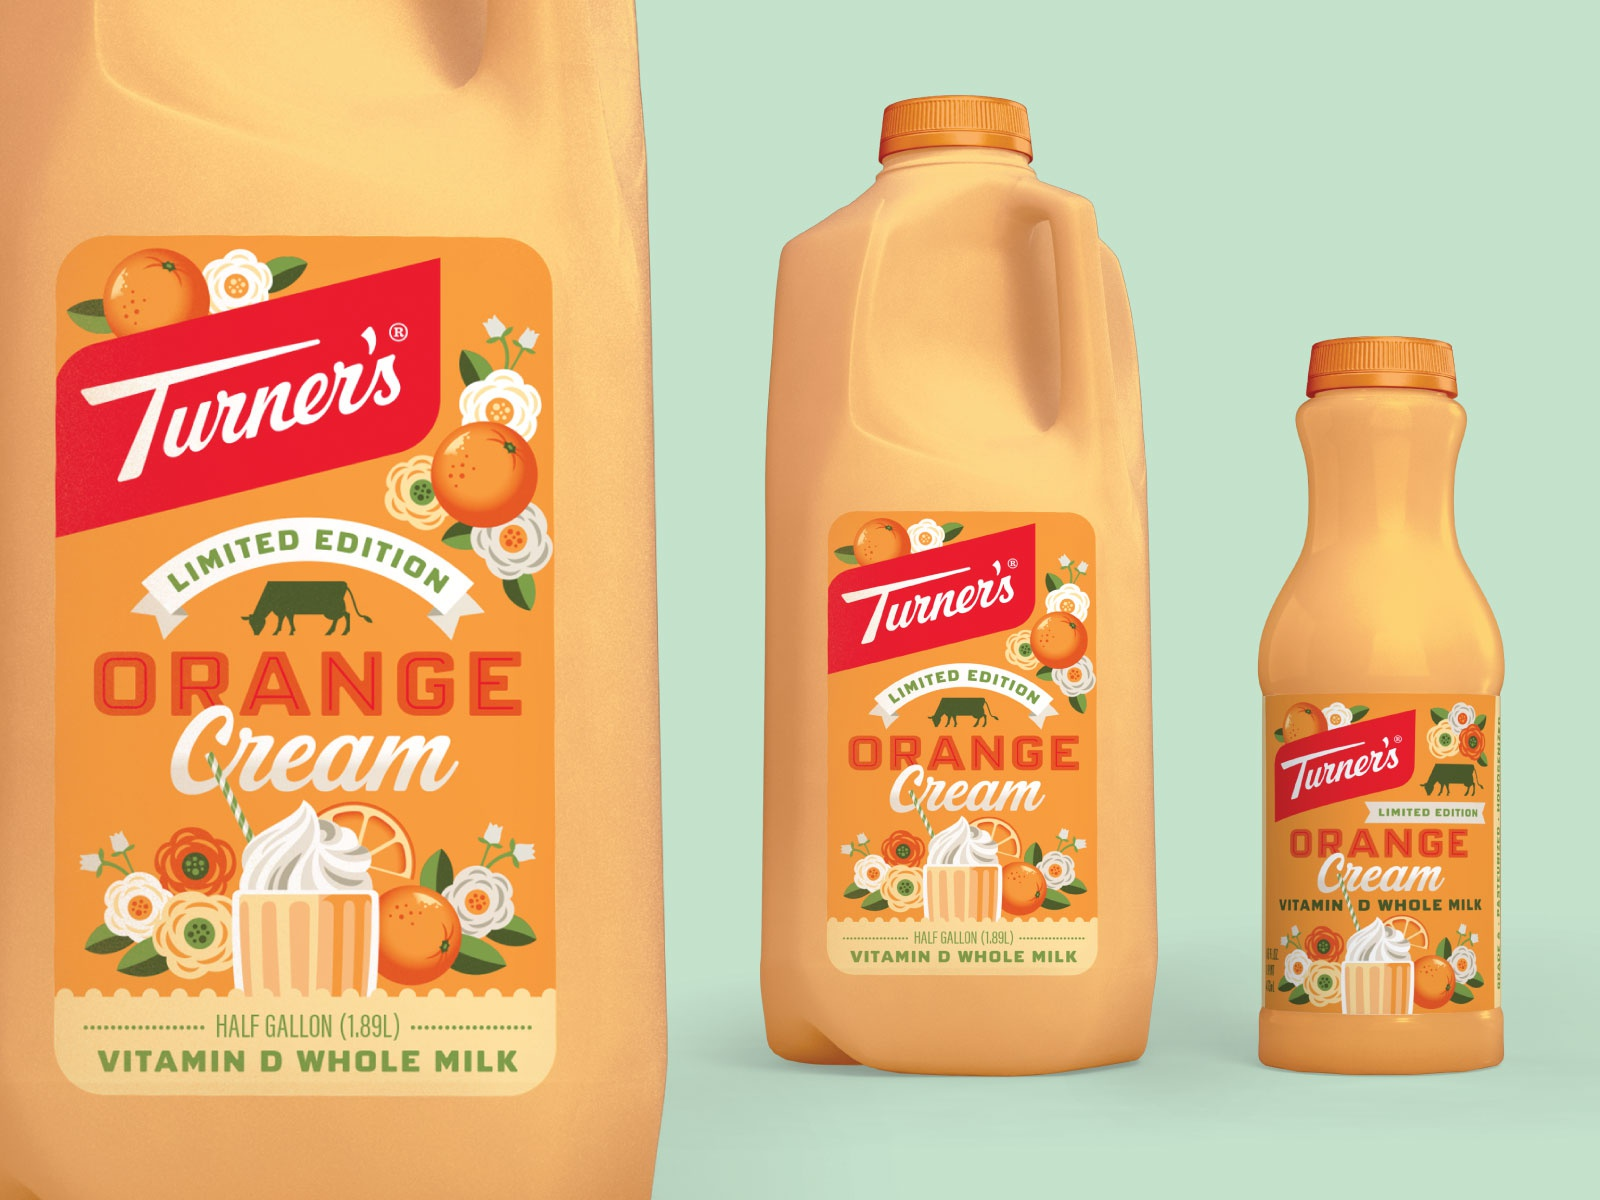 Turner 2019 orangecream db